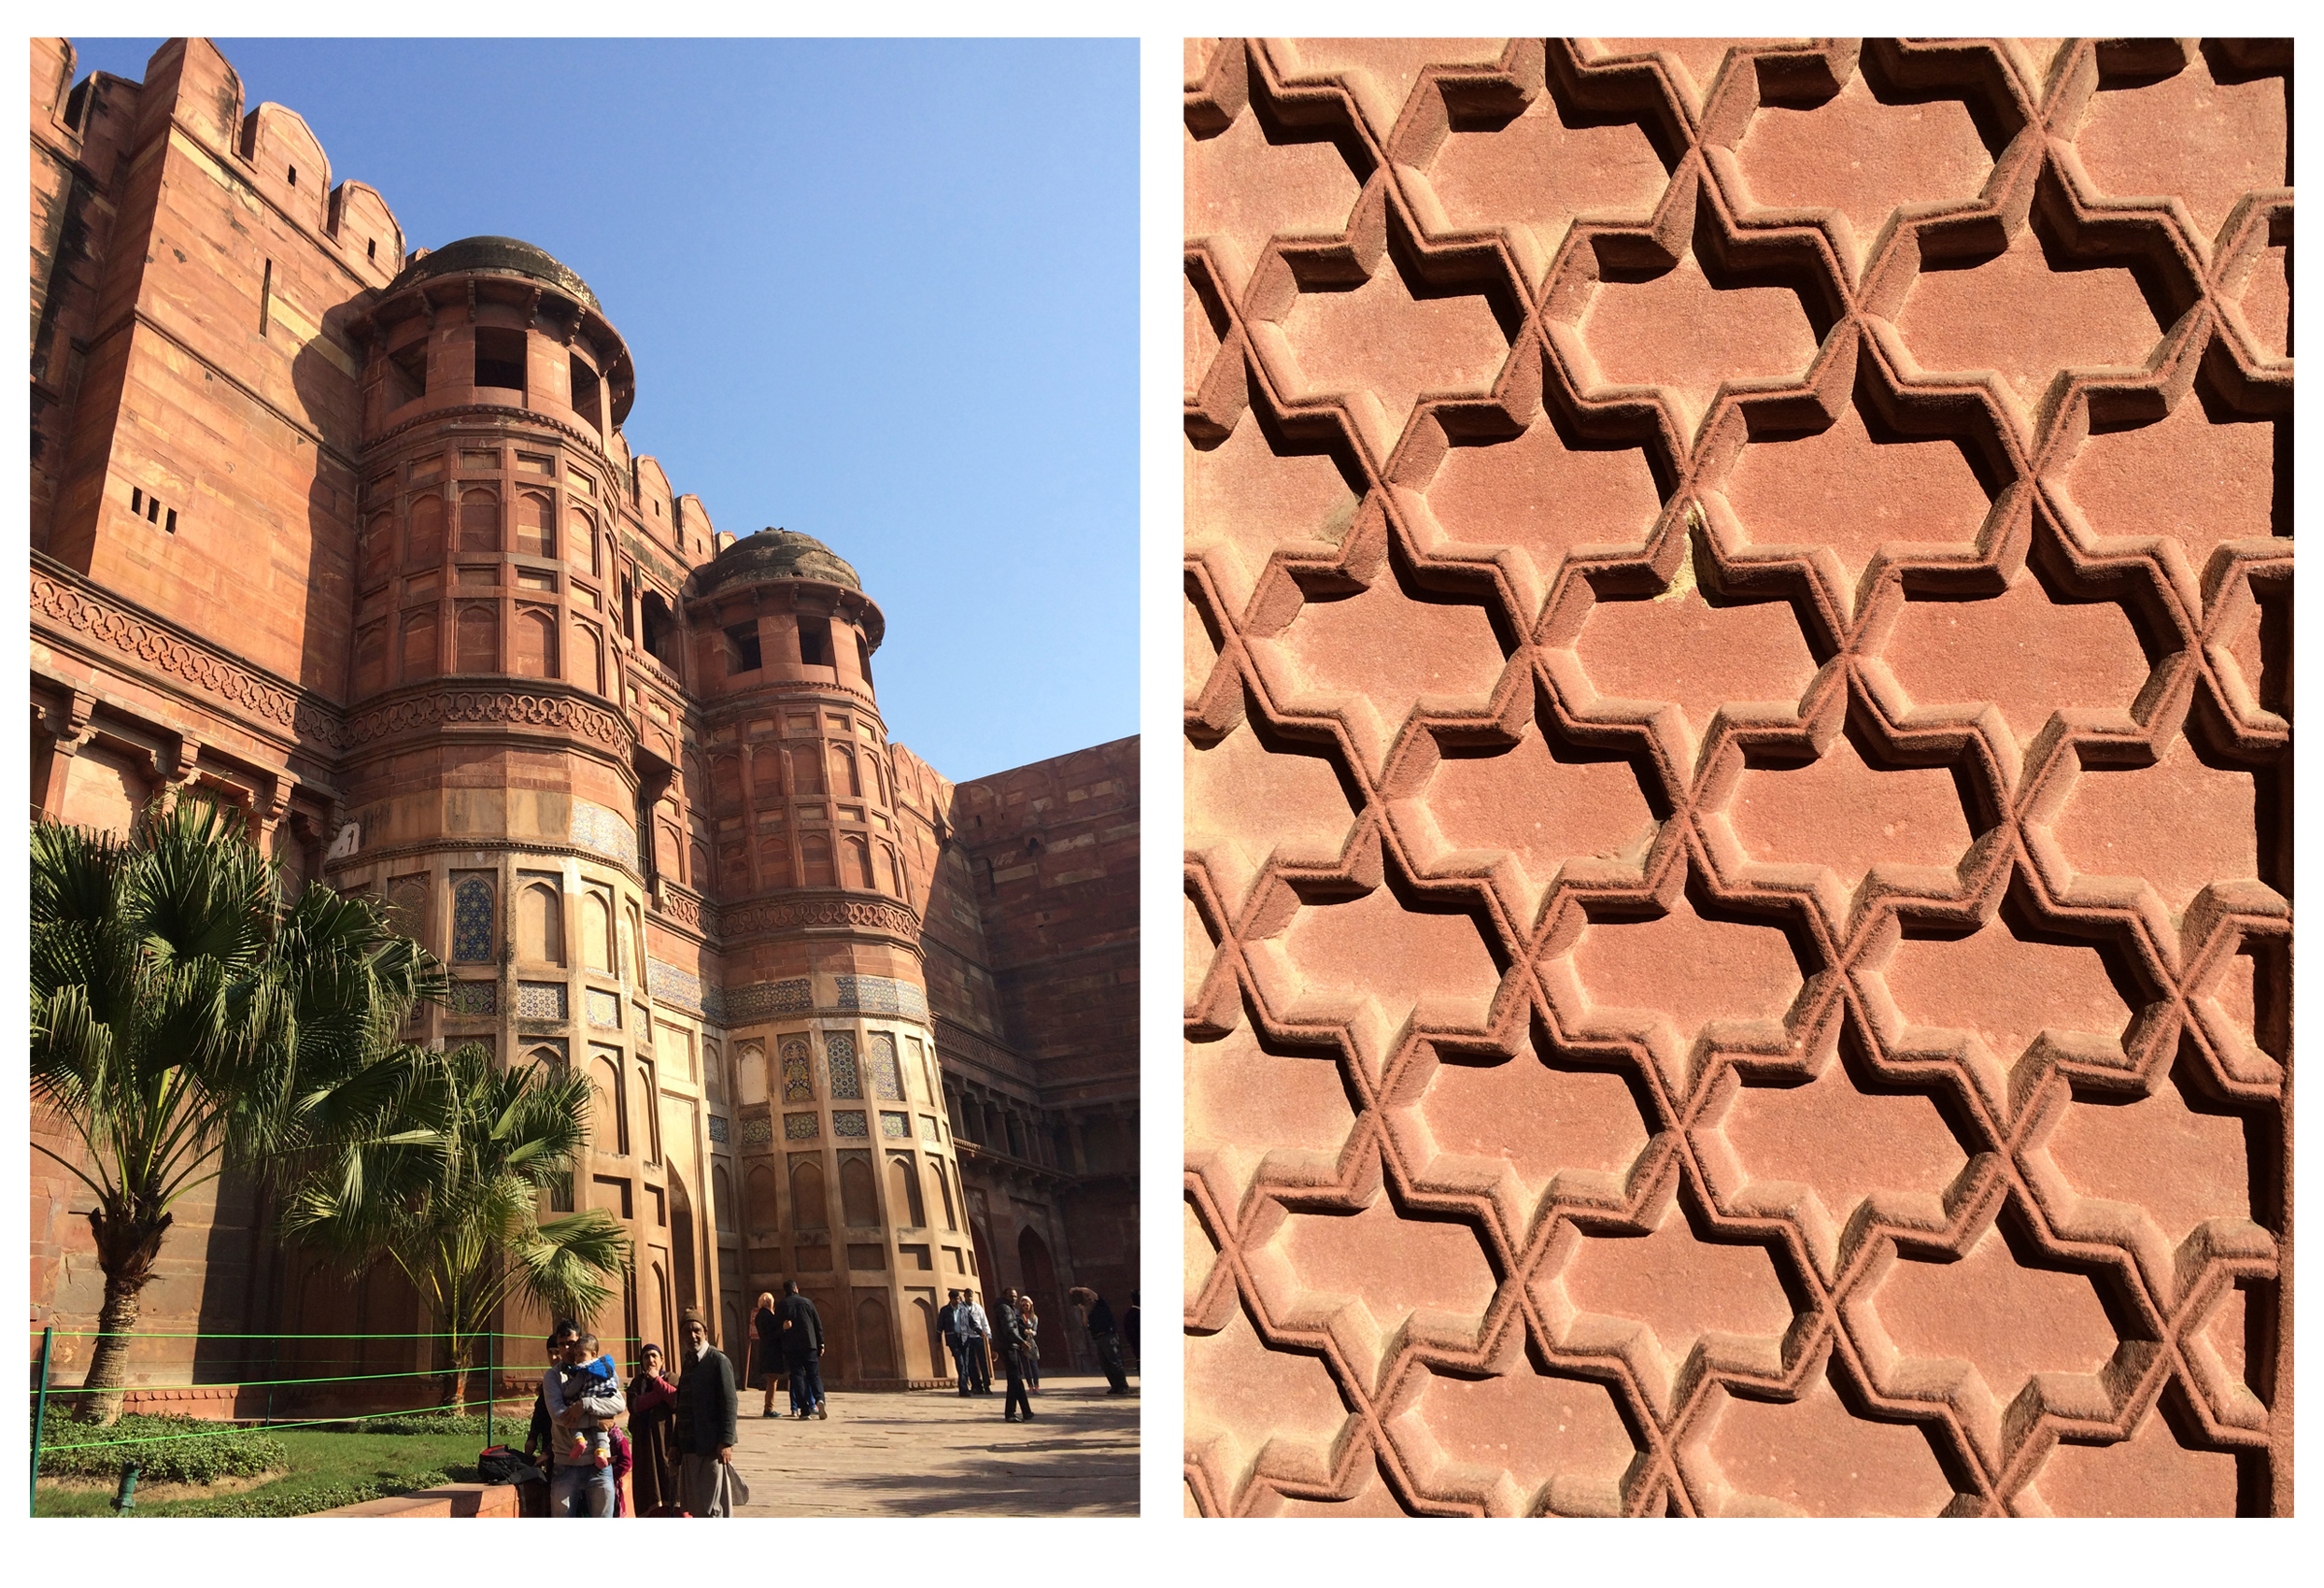 Agra Fort entry and details